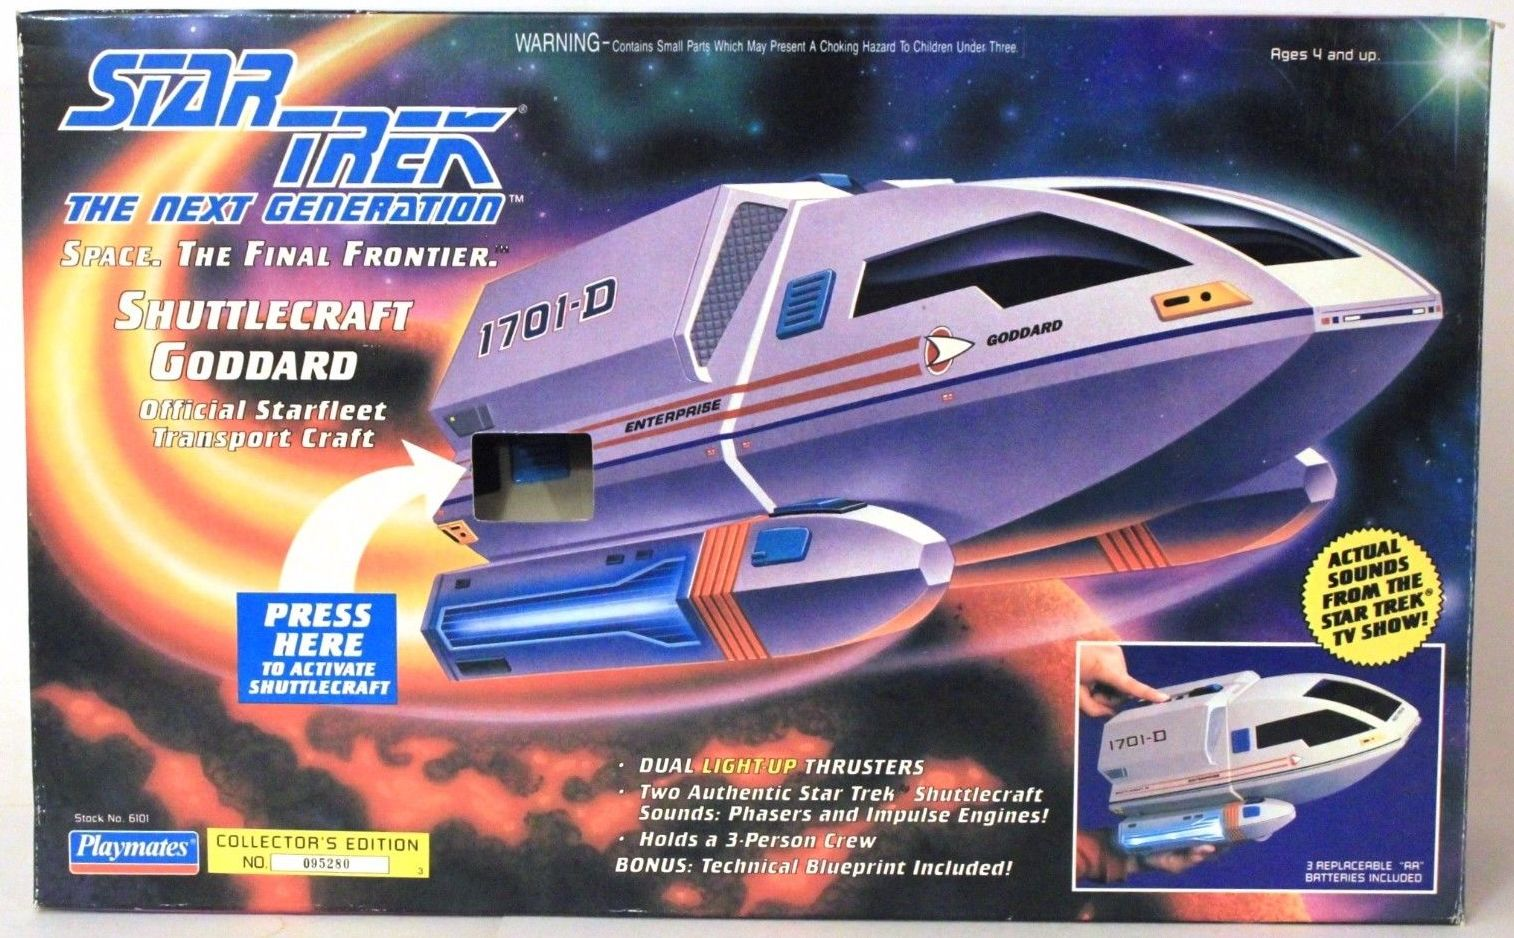 Playmates Star Trek Shuttlecraft Goddard